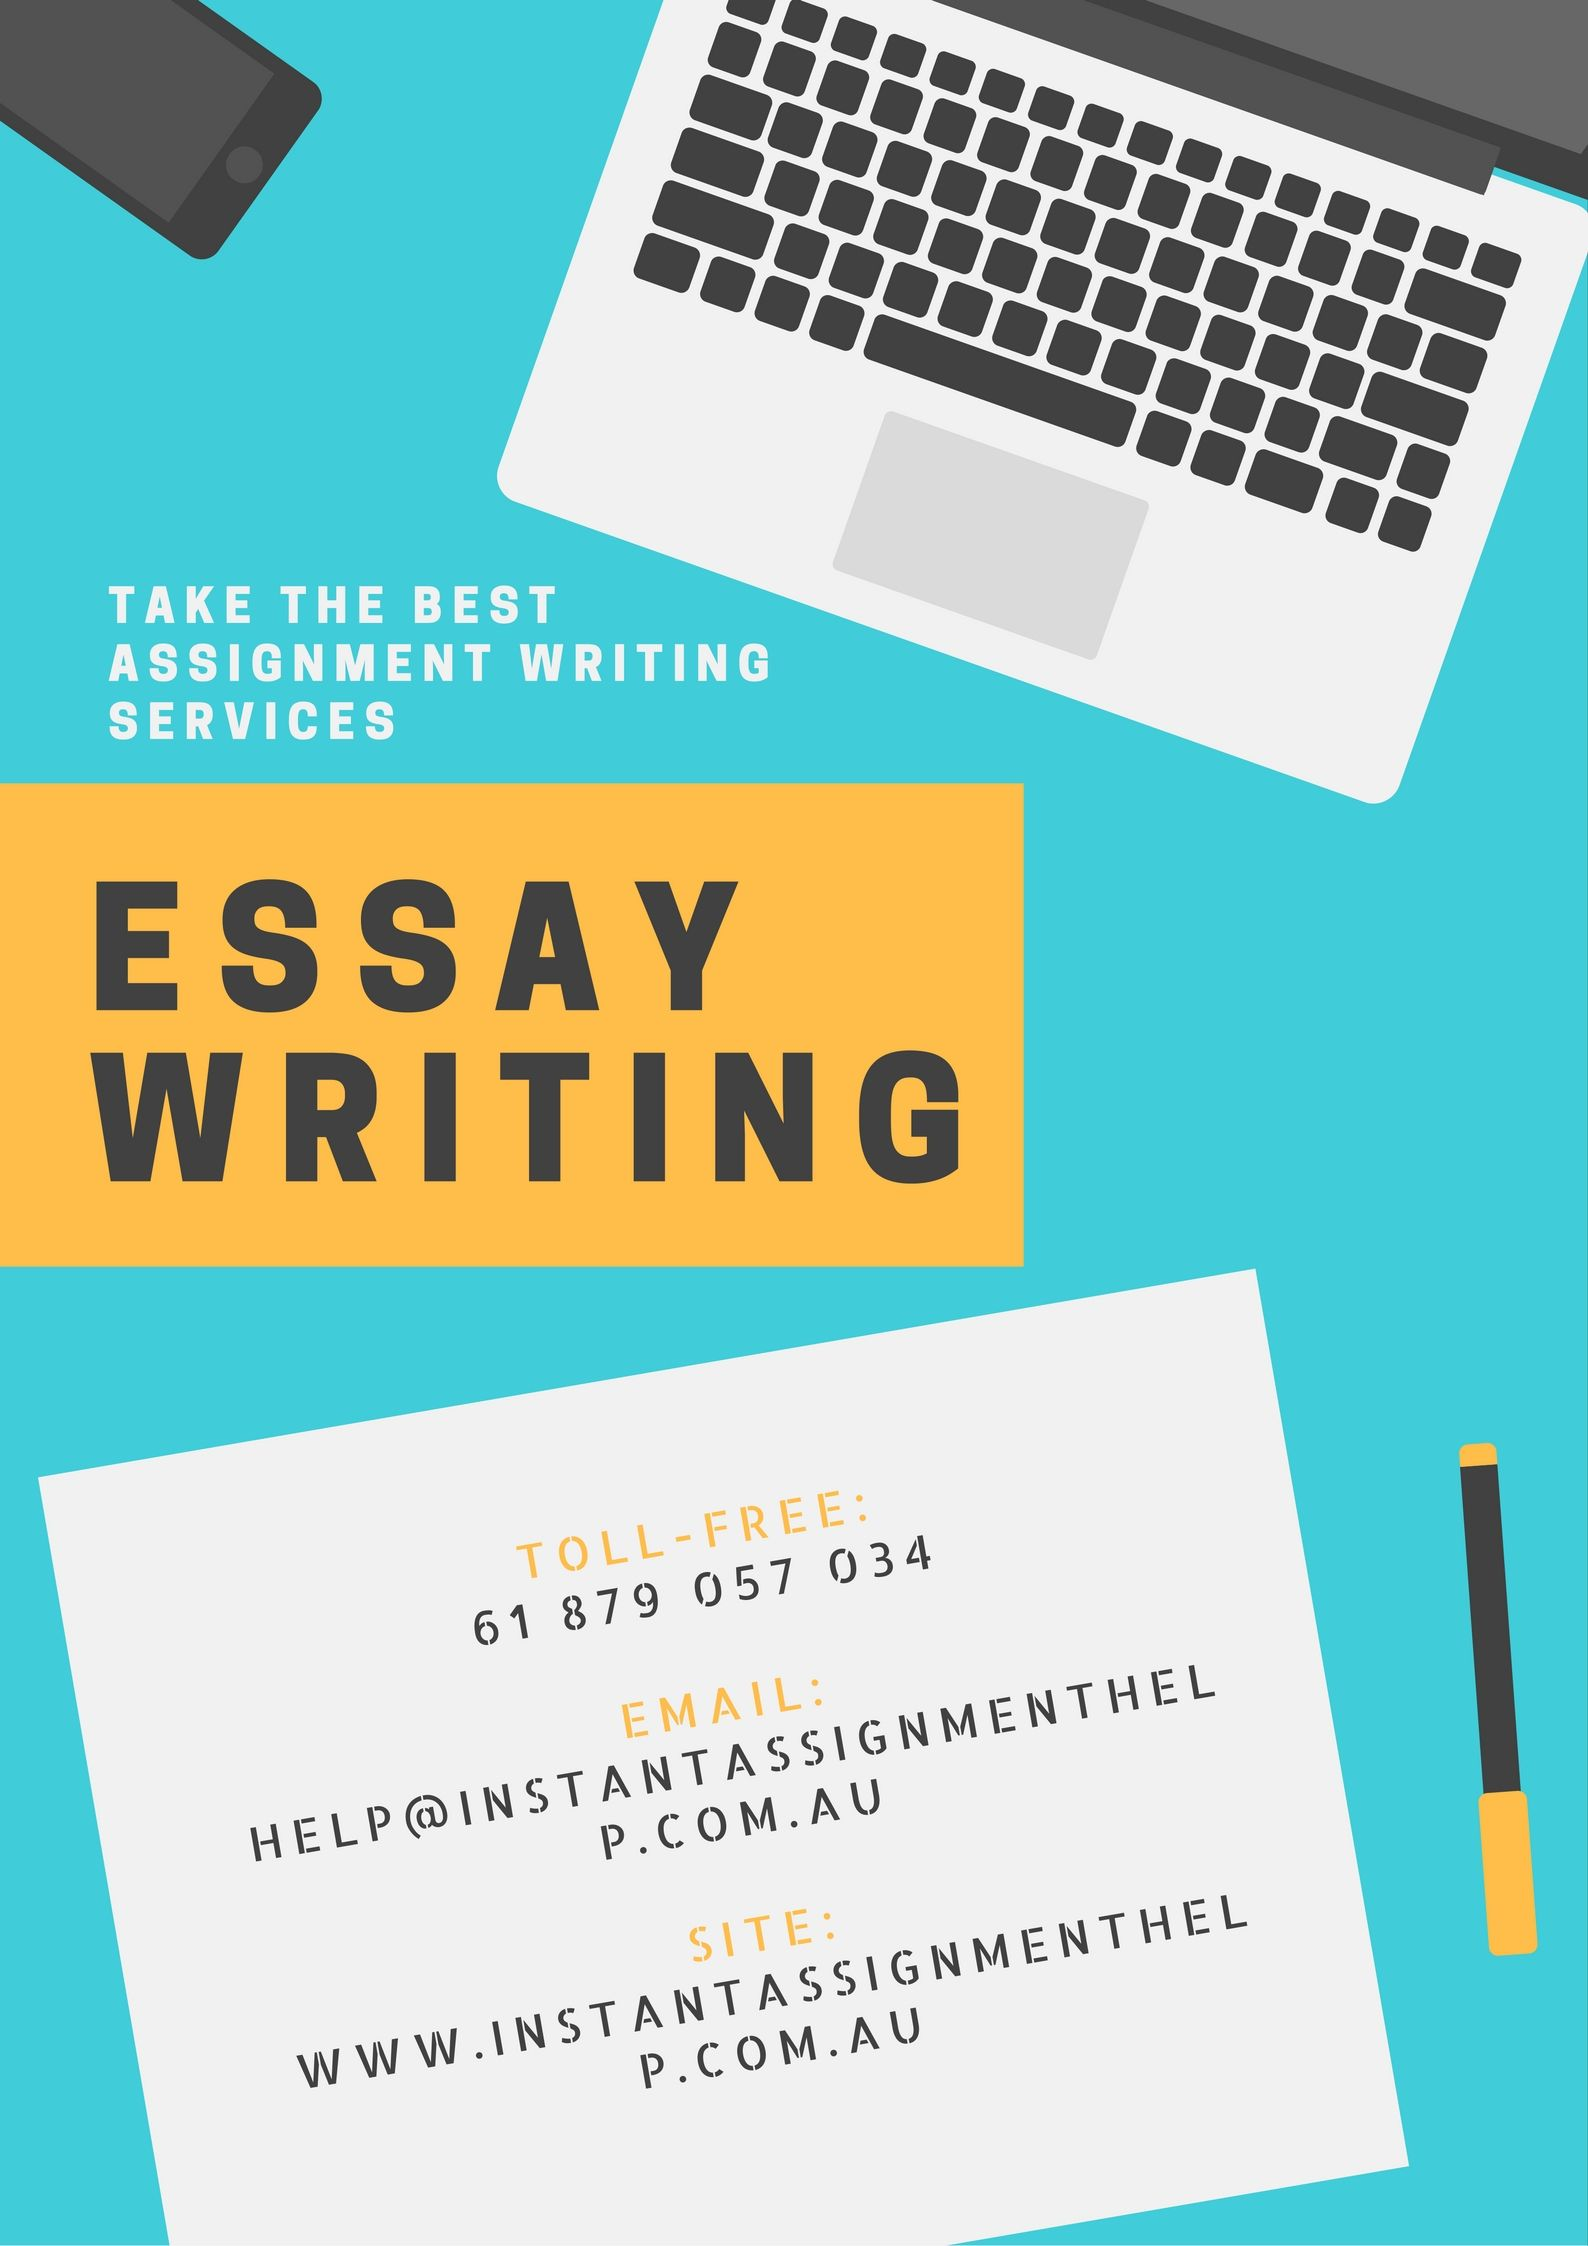 004 Essay Writing Help Example Frightening Contests For Middle School Students Near Me Australia Full